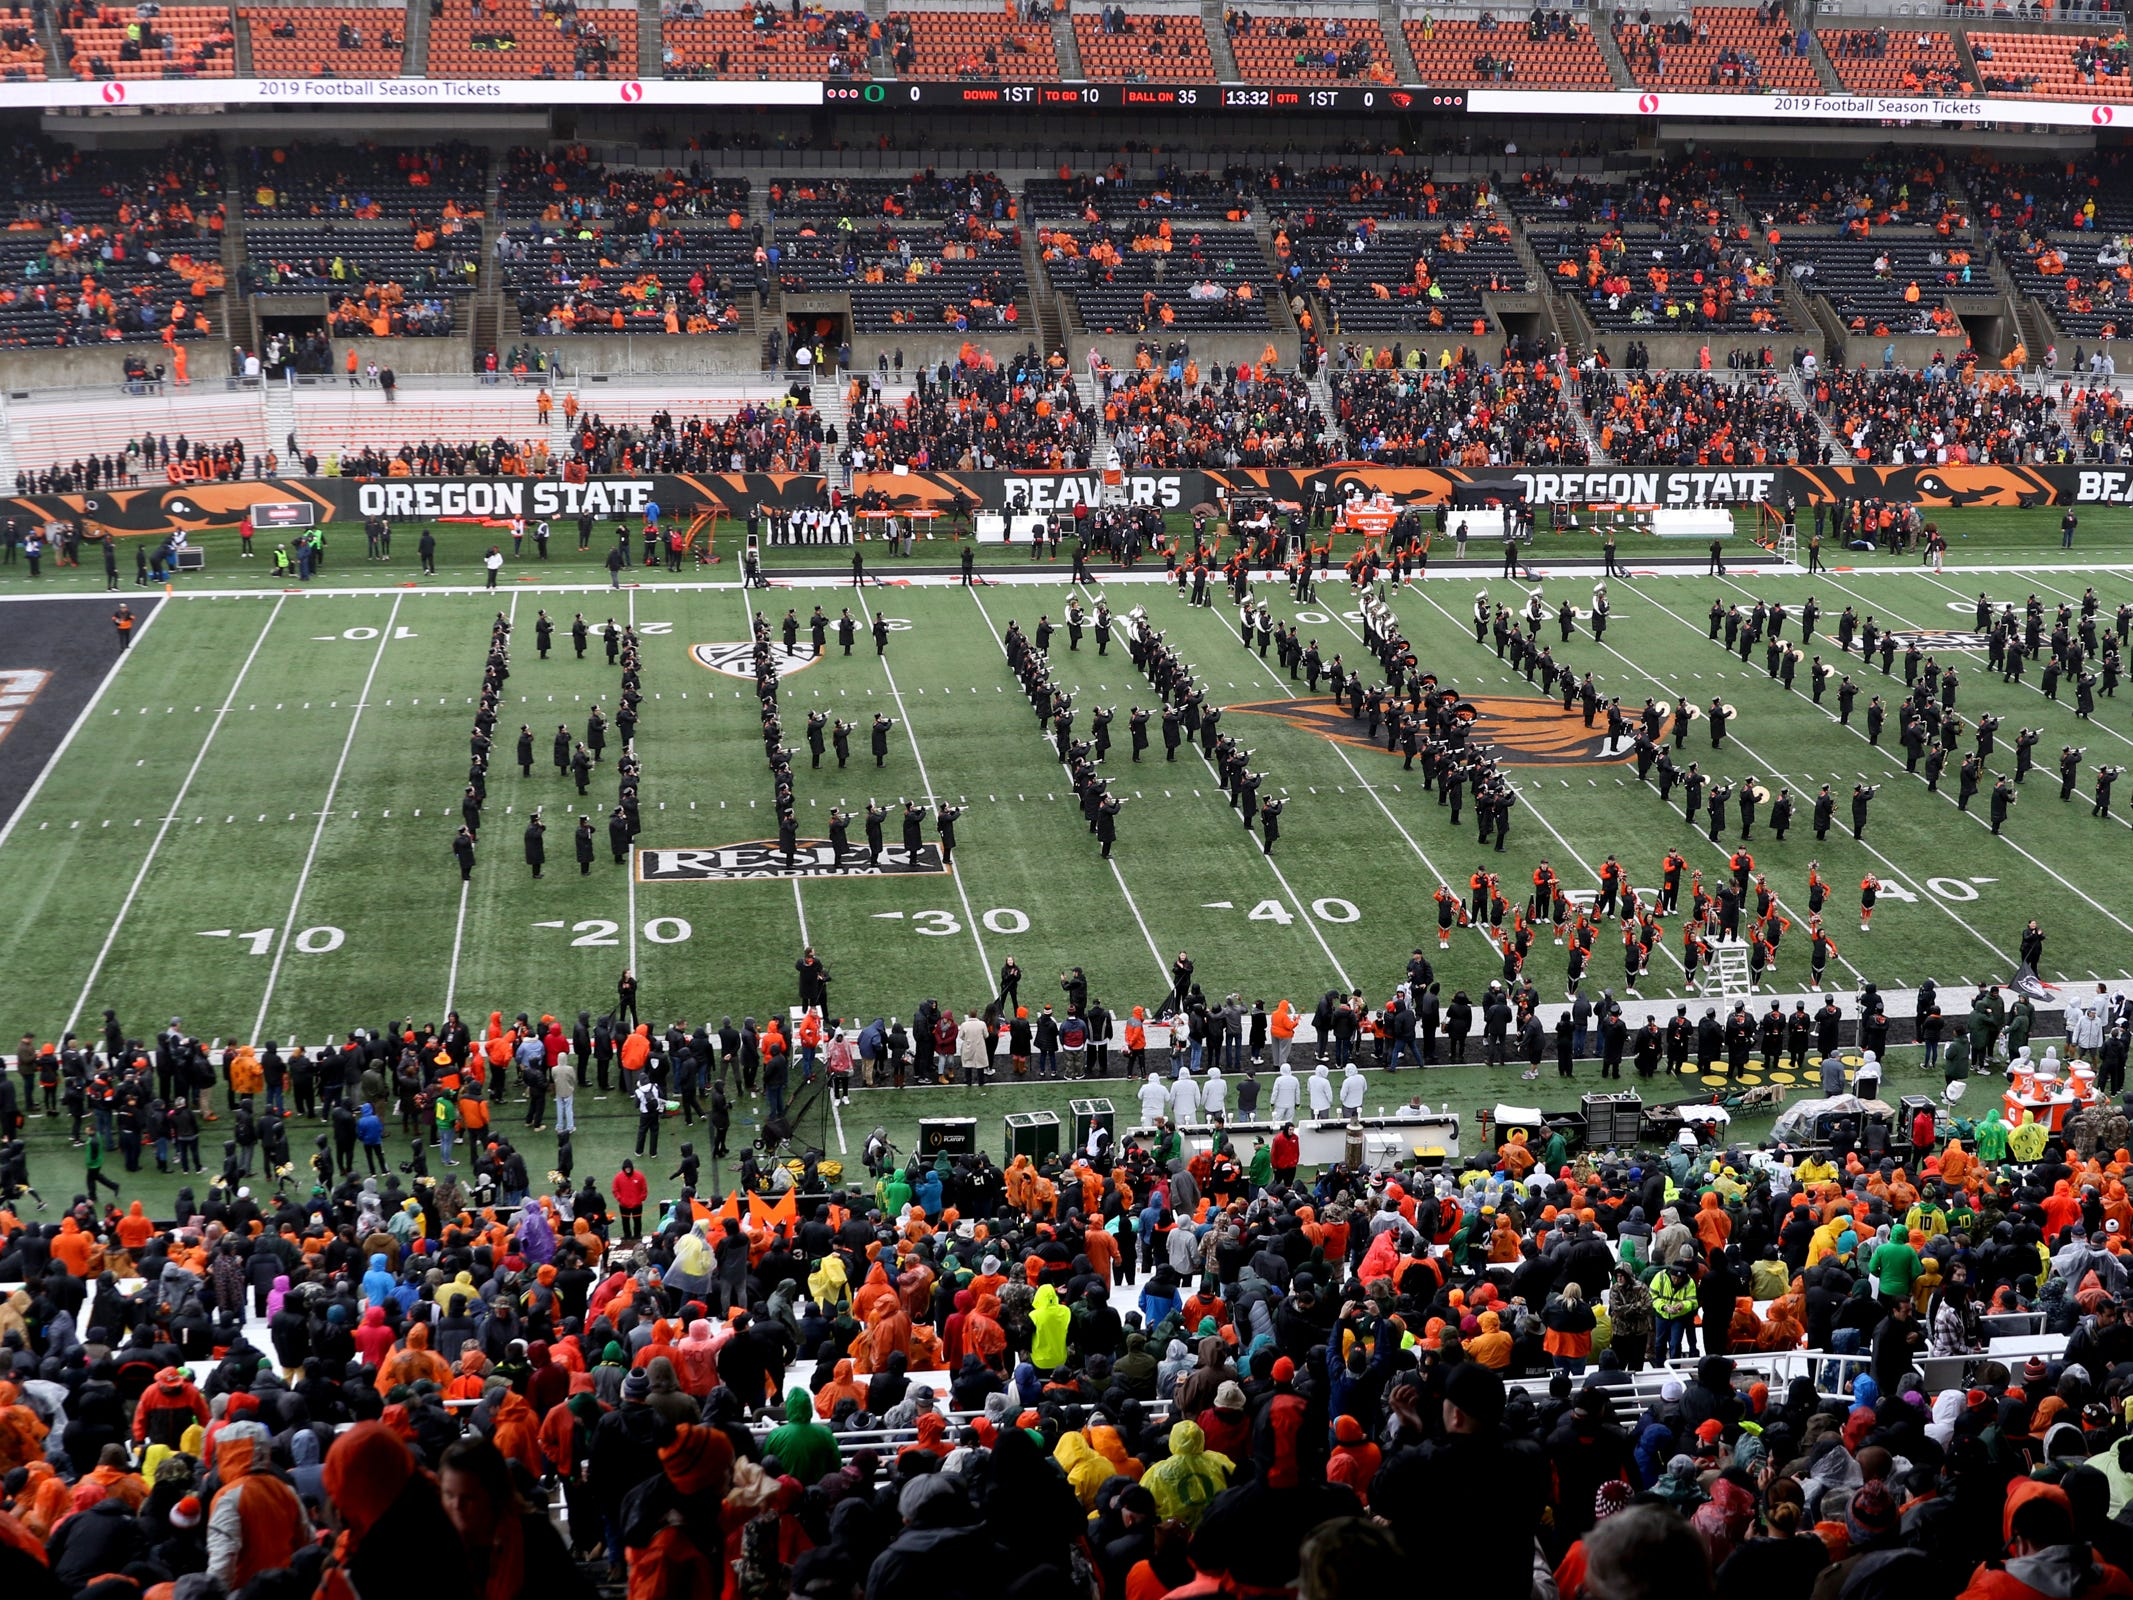 The Oregon State marching band performs before the start of the Oregon vs. Oregon State Civil war football game at Oregon State University in Corvallis on Friday, Nov. 23, 2018.